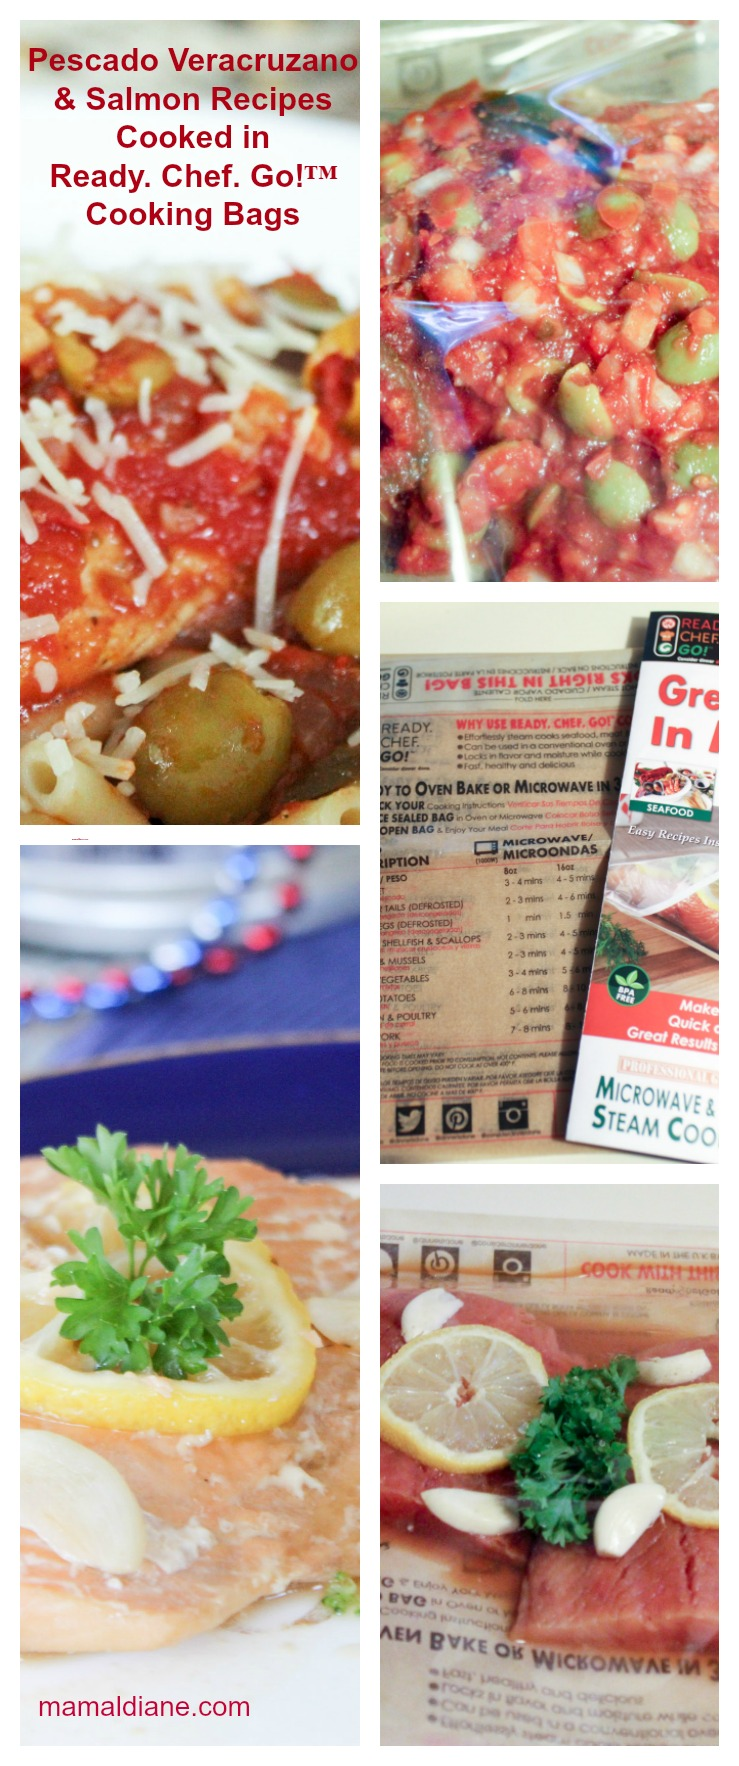 Pescado Veracruzano & Salmon Recipes Cooked in Ready. Chef. Go!™ Cooking Bags Collage